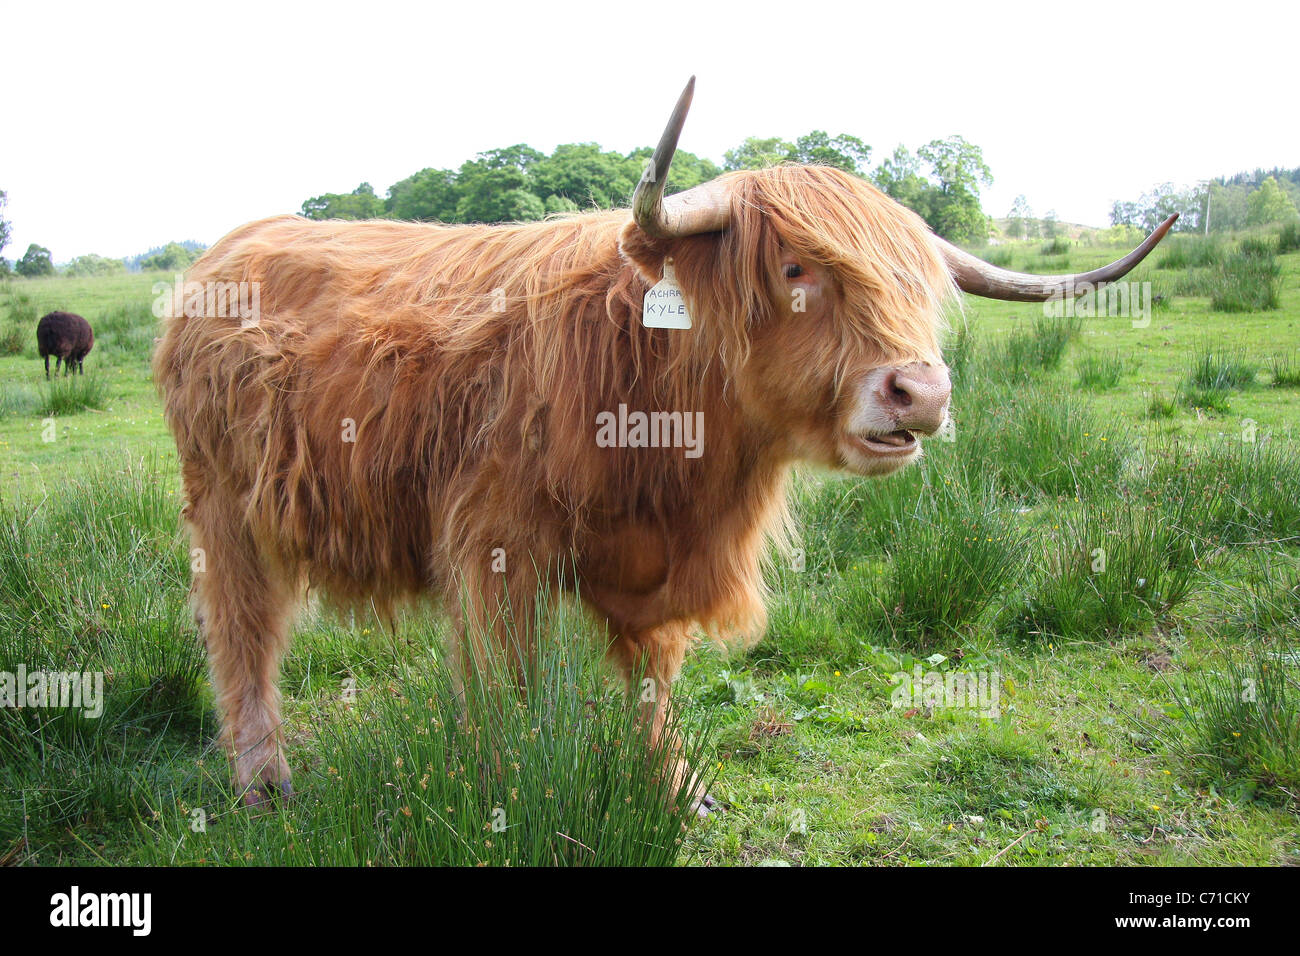 highland cattle, cow scotland, horns,grazing, lochs and glens - Stock Image